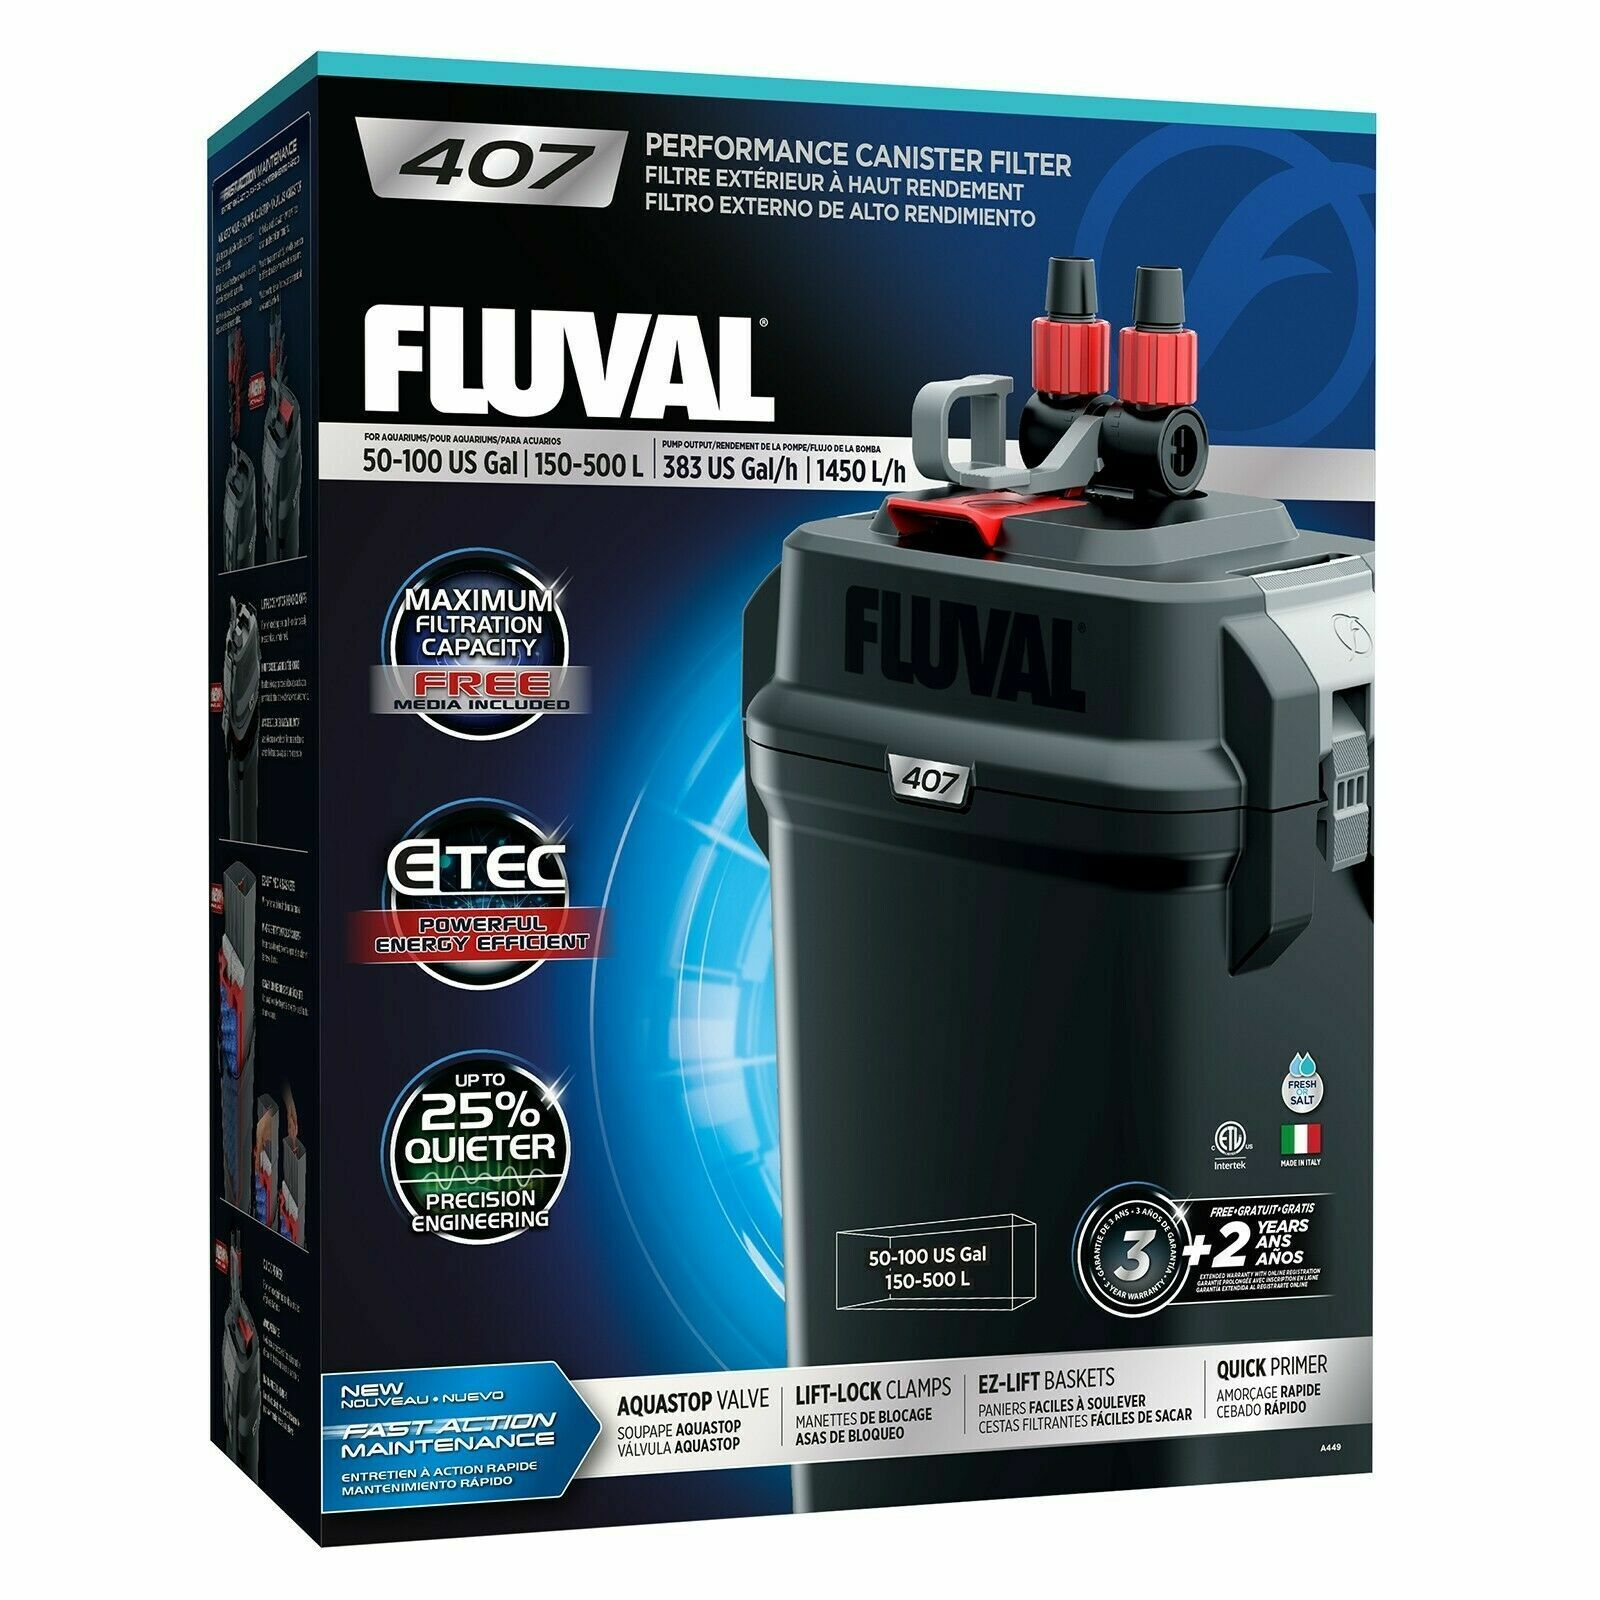 FLUVAL 407 Aquarium Canister Filter All Media included